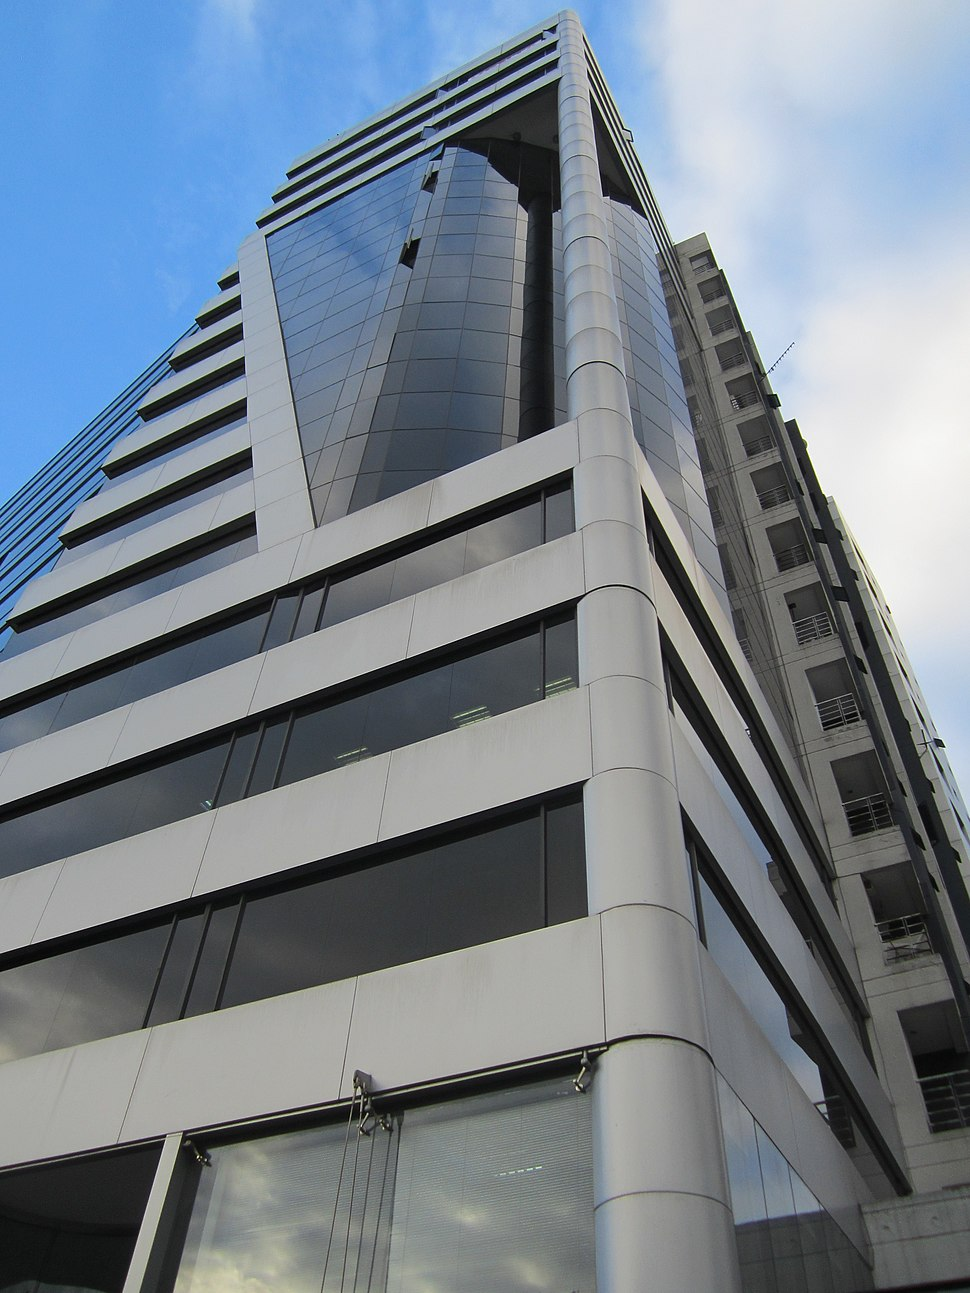 Modern Building in Quito, capital city of Ecuador,.picture.bb1a